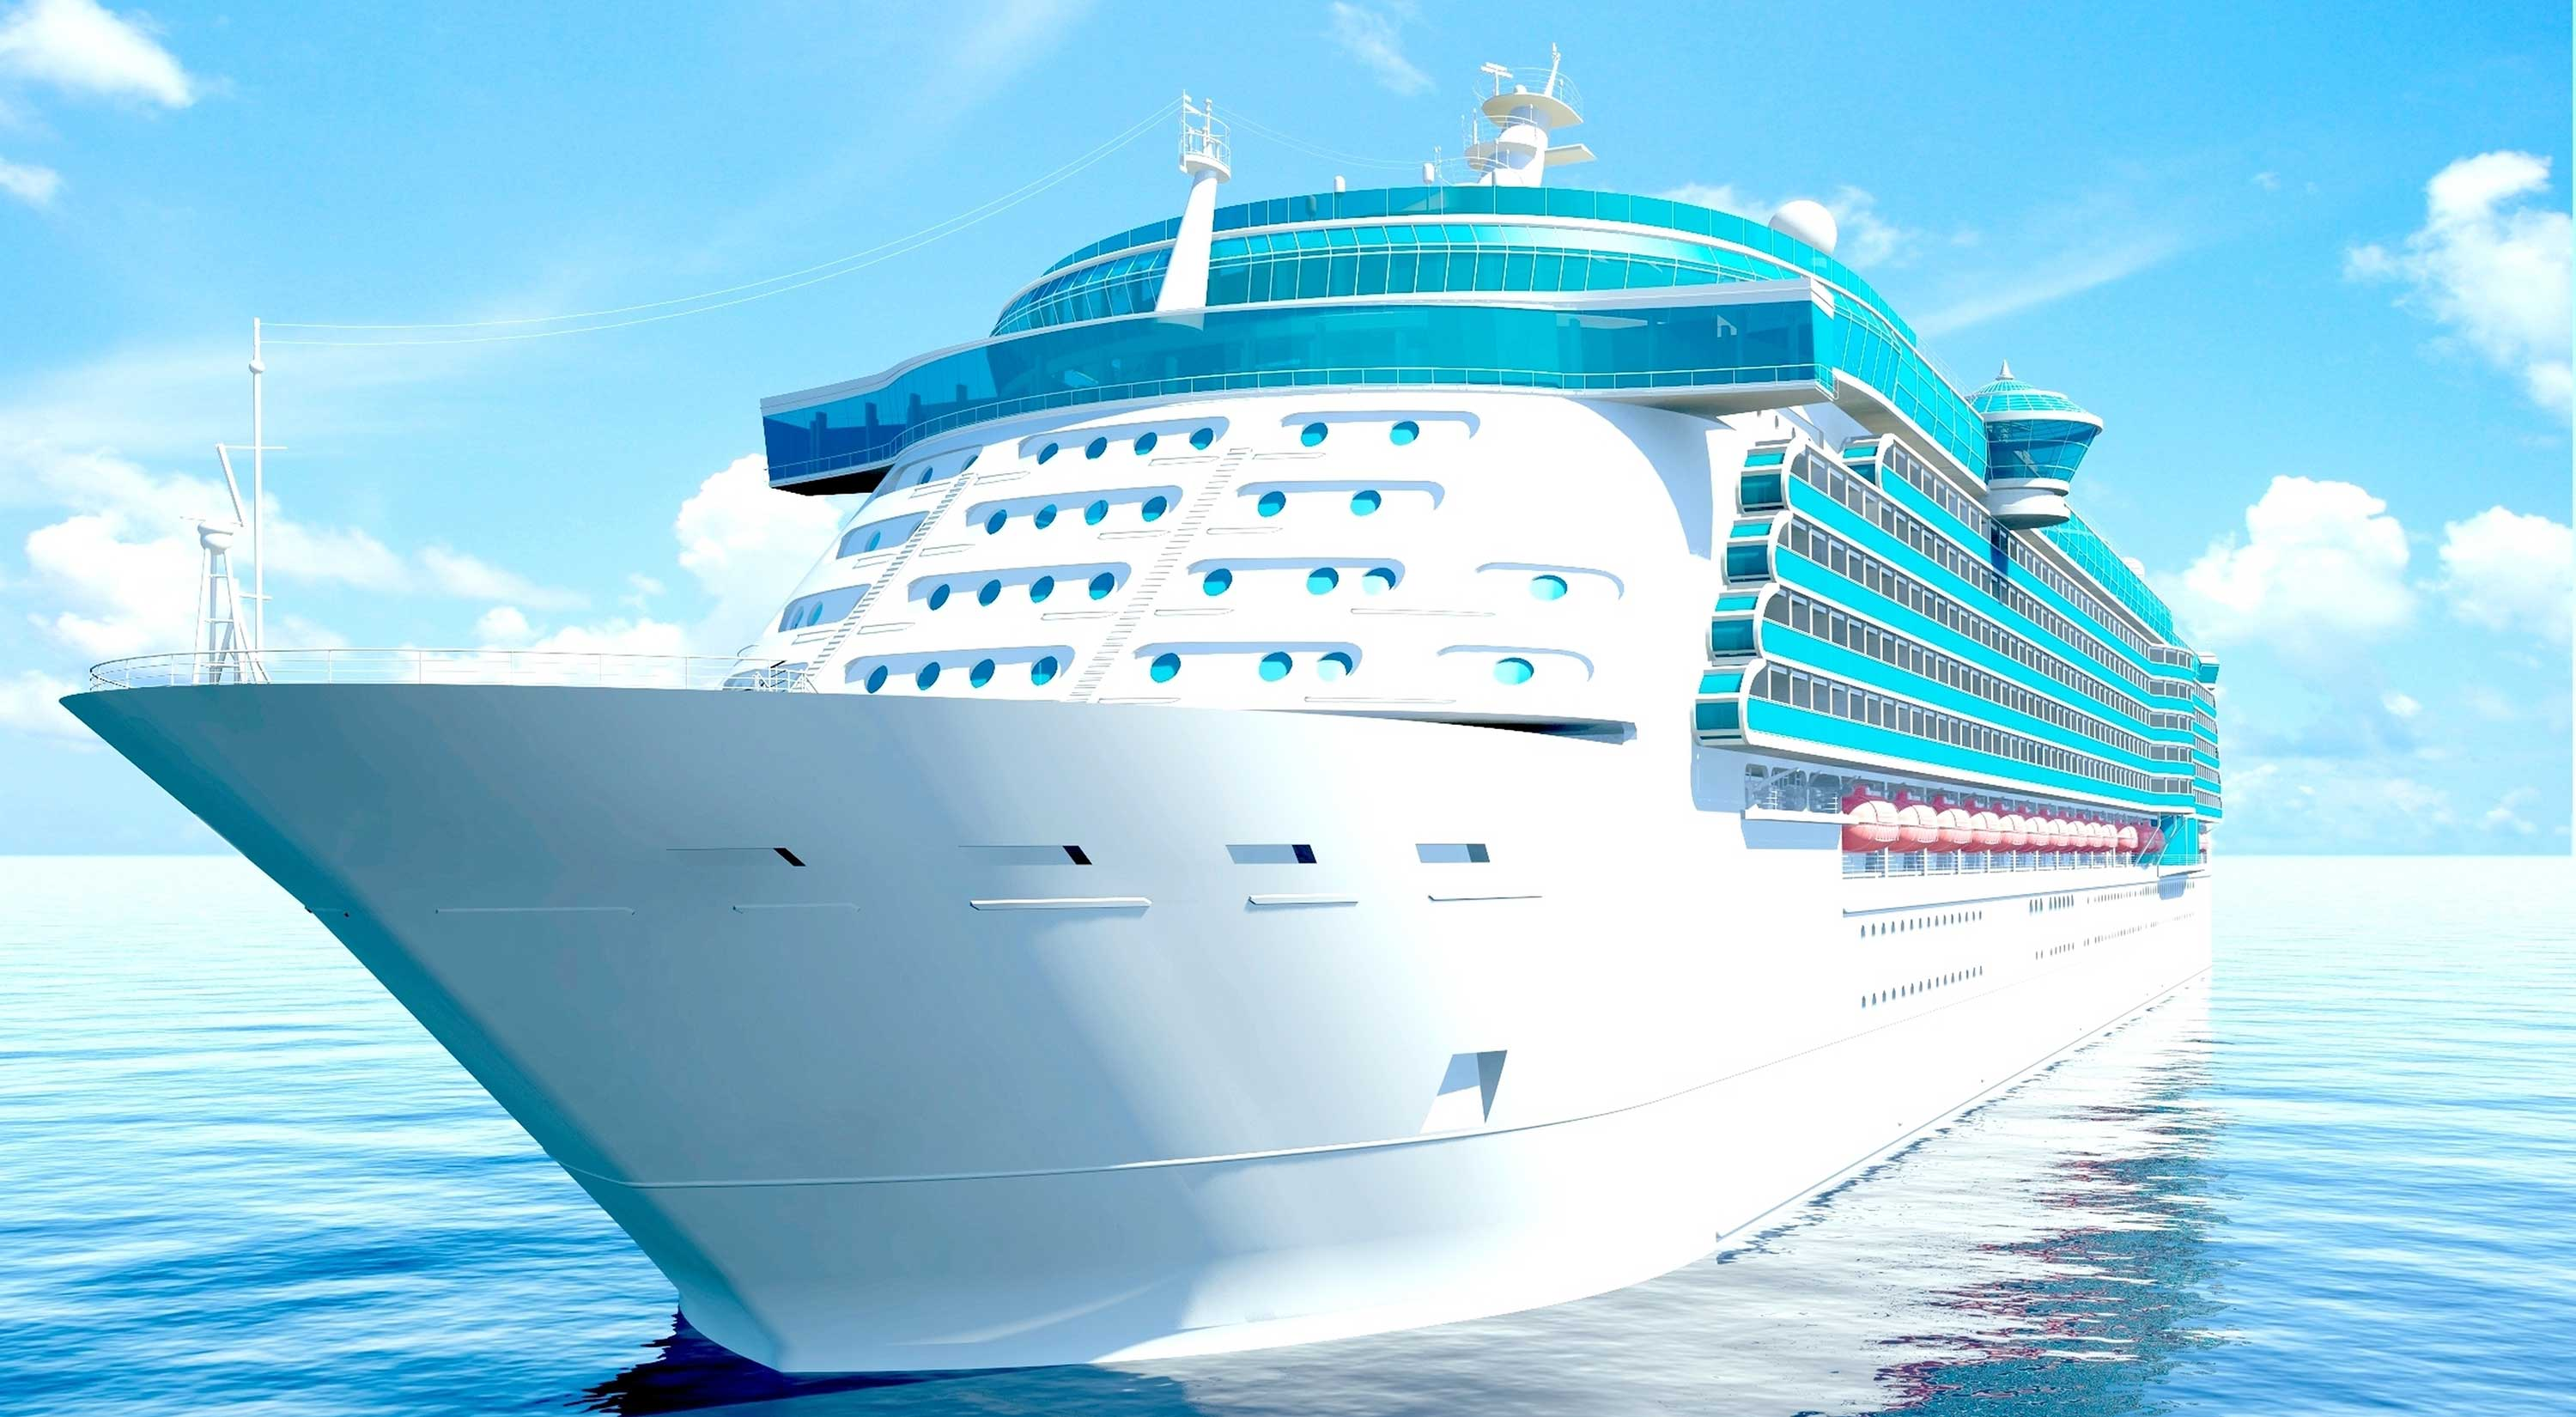 Book A Cruise Student Tours - Educational cruise ships